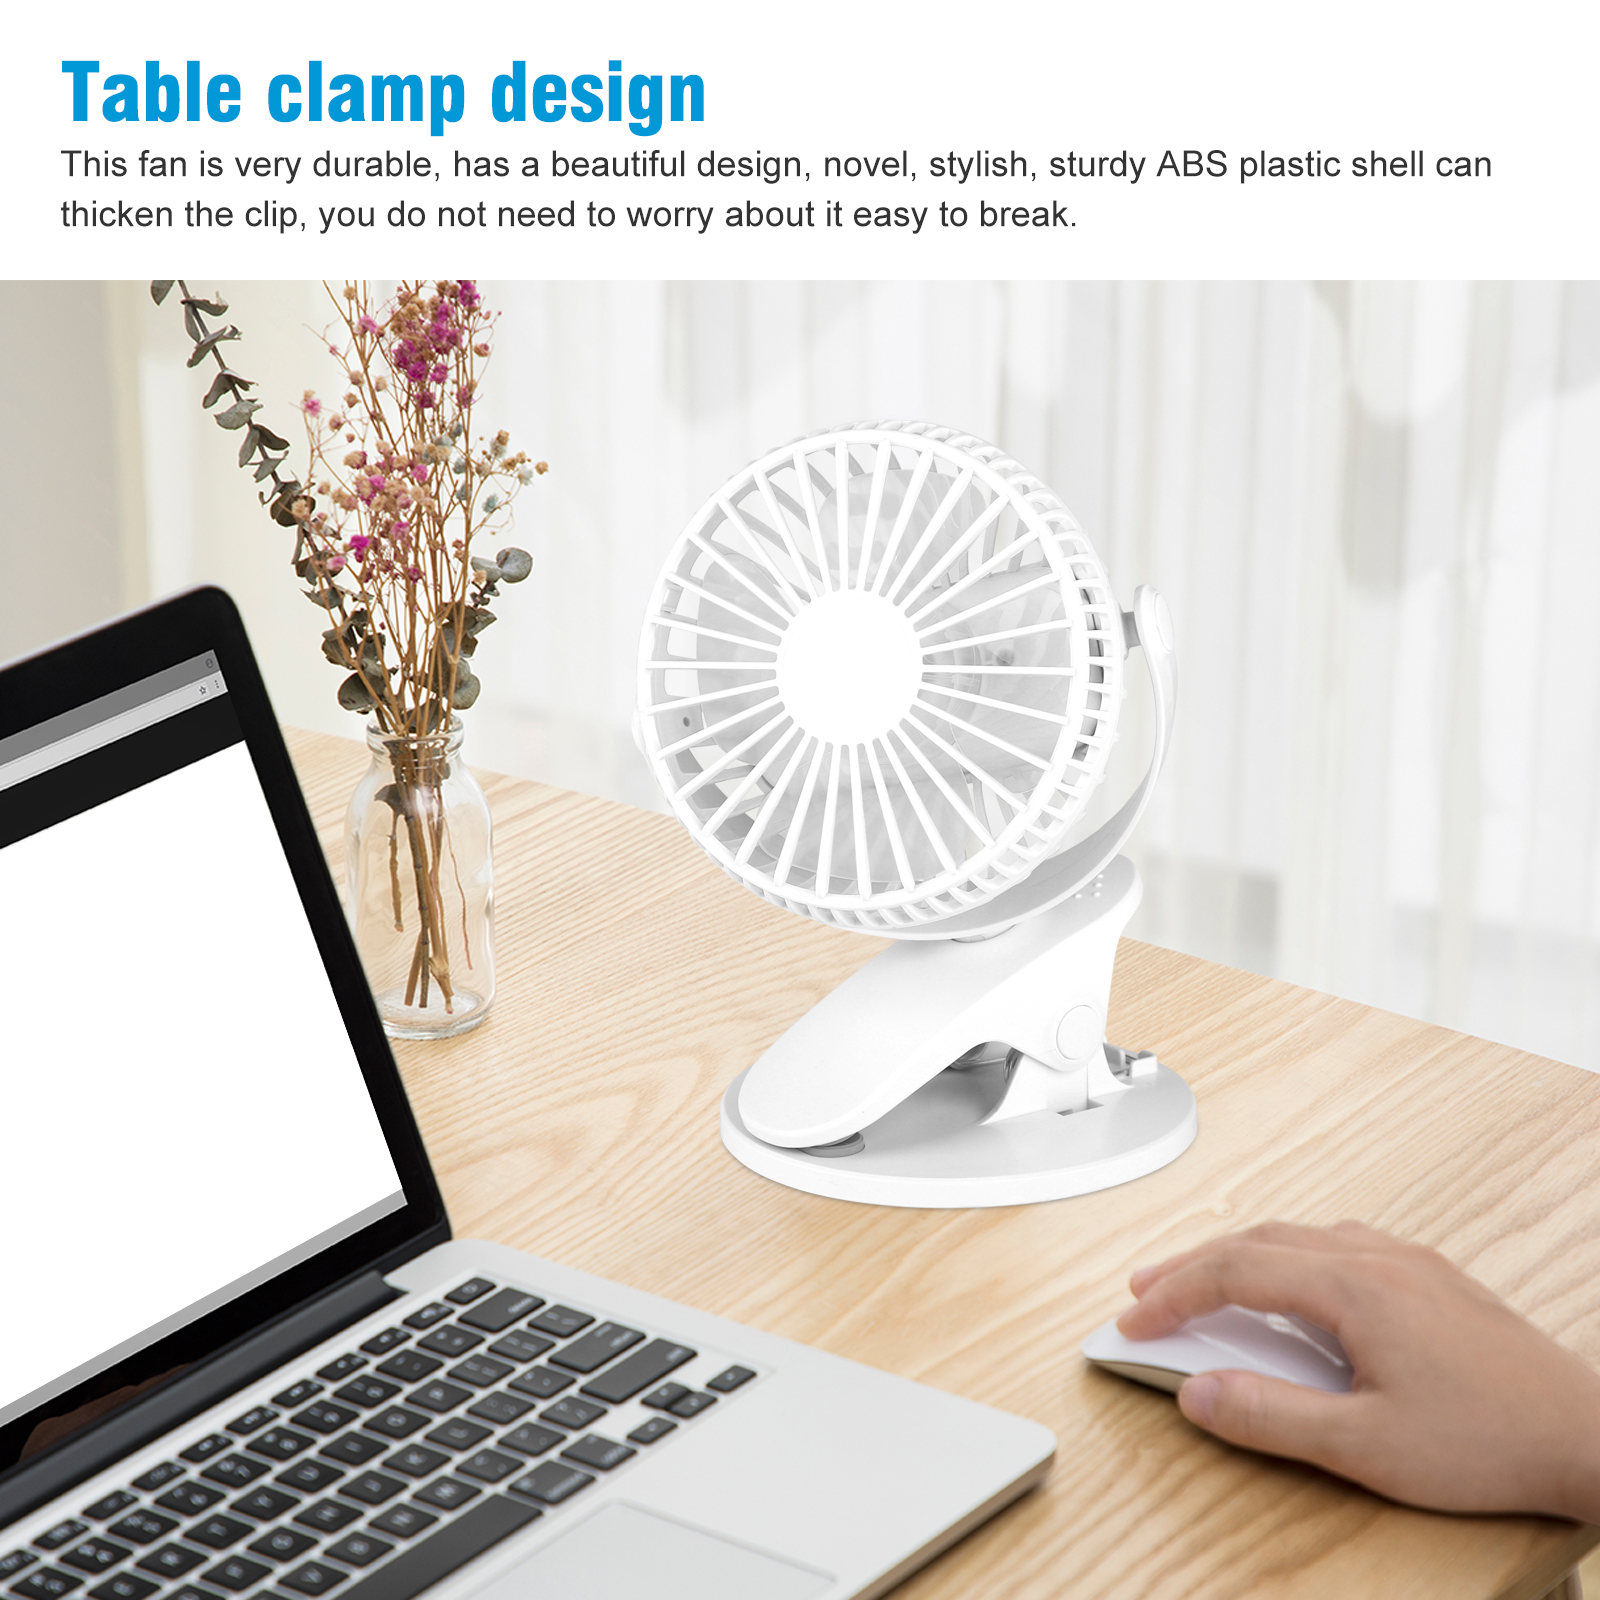 Laptop Table 1200mAh,Black WW/&C Mini Clip Fan 360/° Rotation 3 Setting Personal Portable Fan for Baby Stroller Car Bedroom etc USB Clip Desk Fan